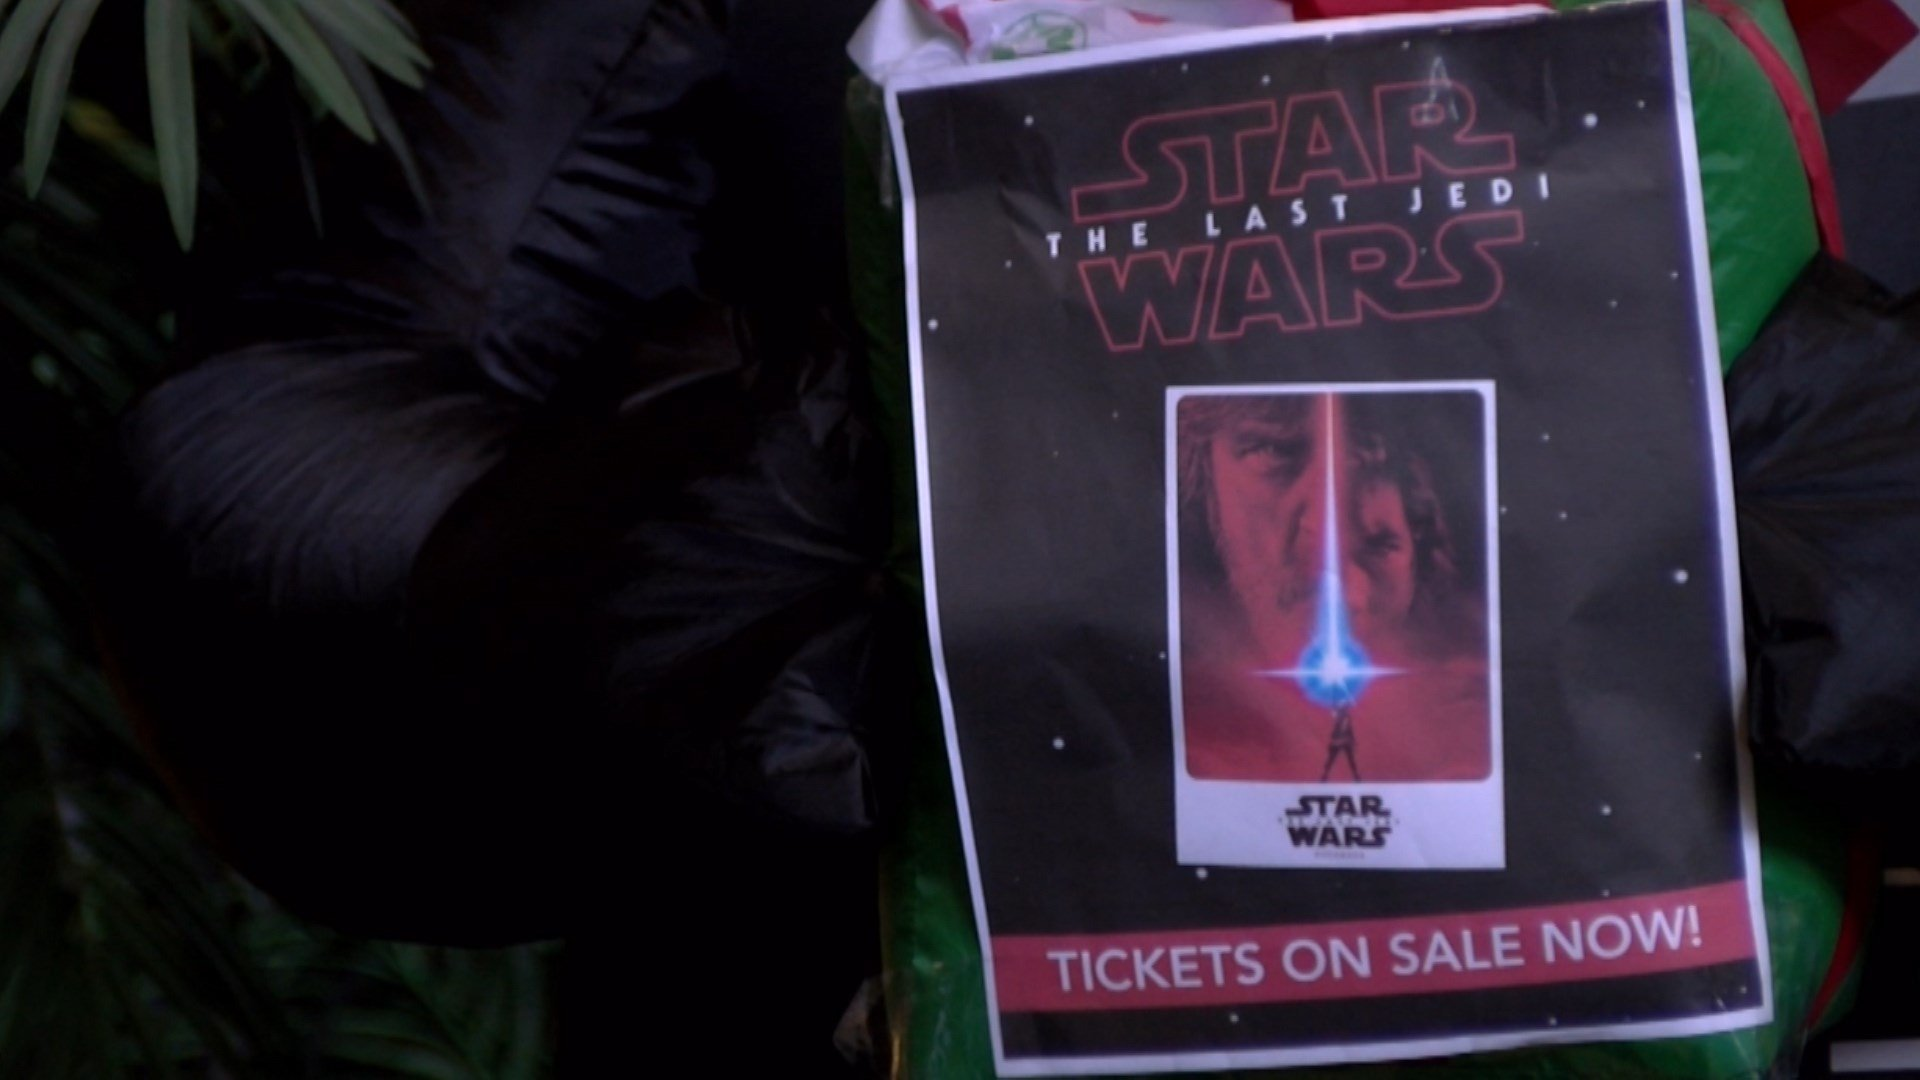 'Star Wars: The Last Jedi' tickets on sale today